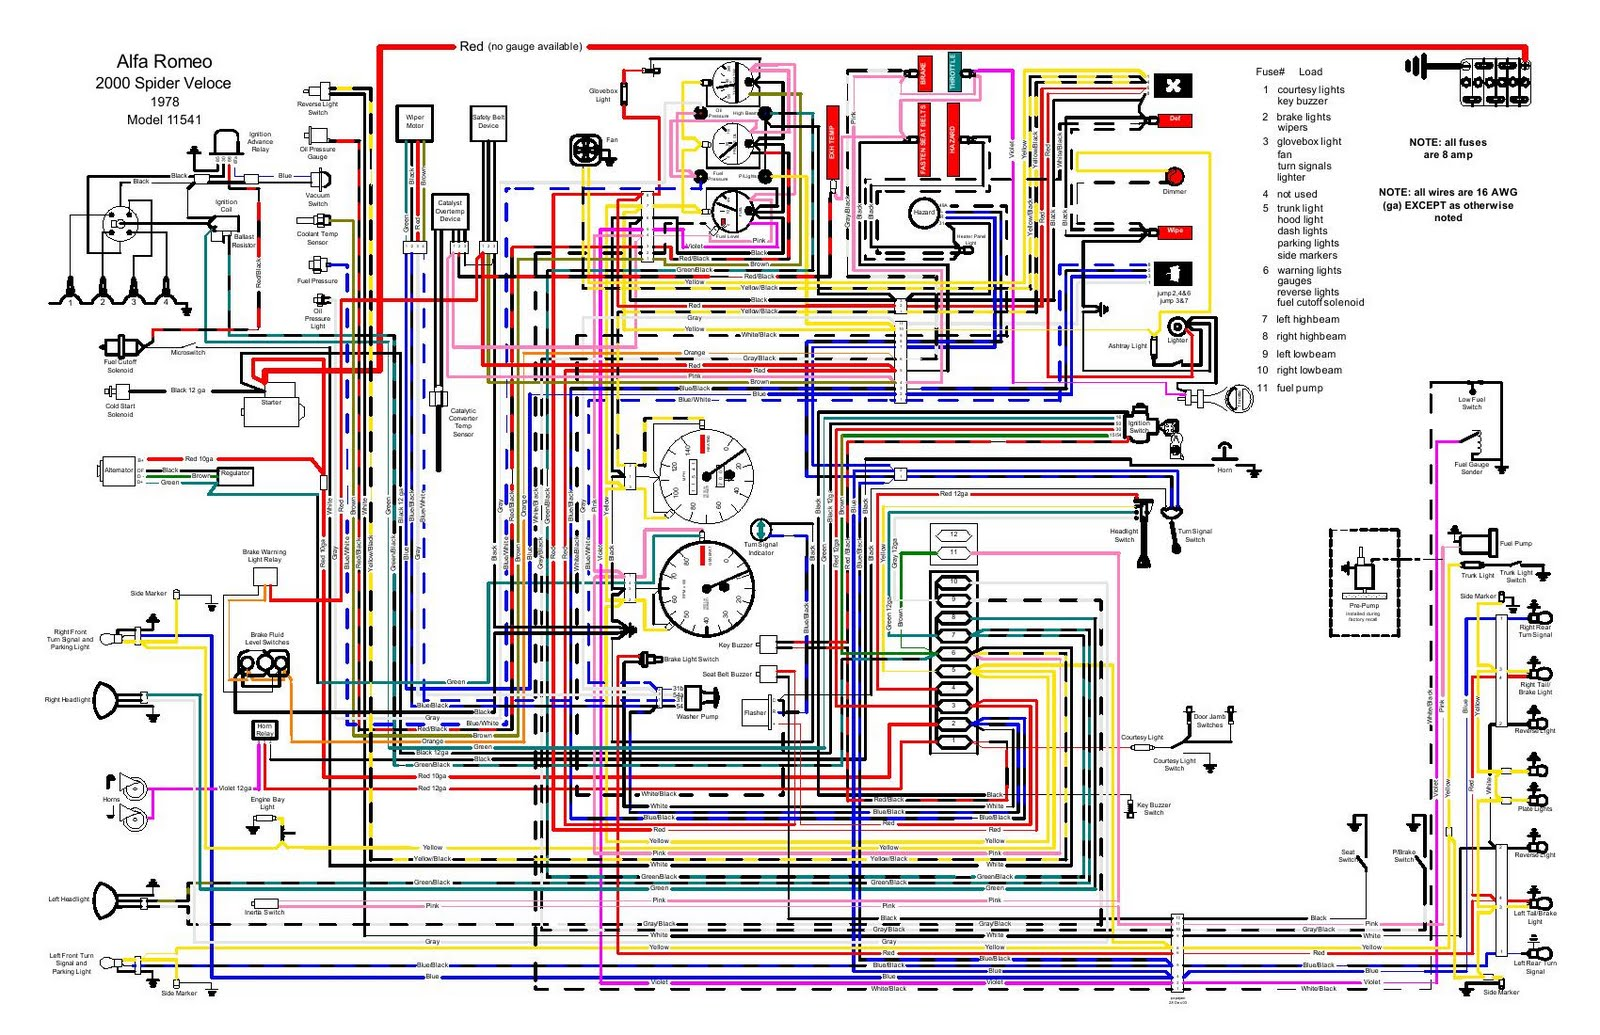 Car Wiring Diagram Software - Electrical wiring diagrams for trucks